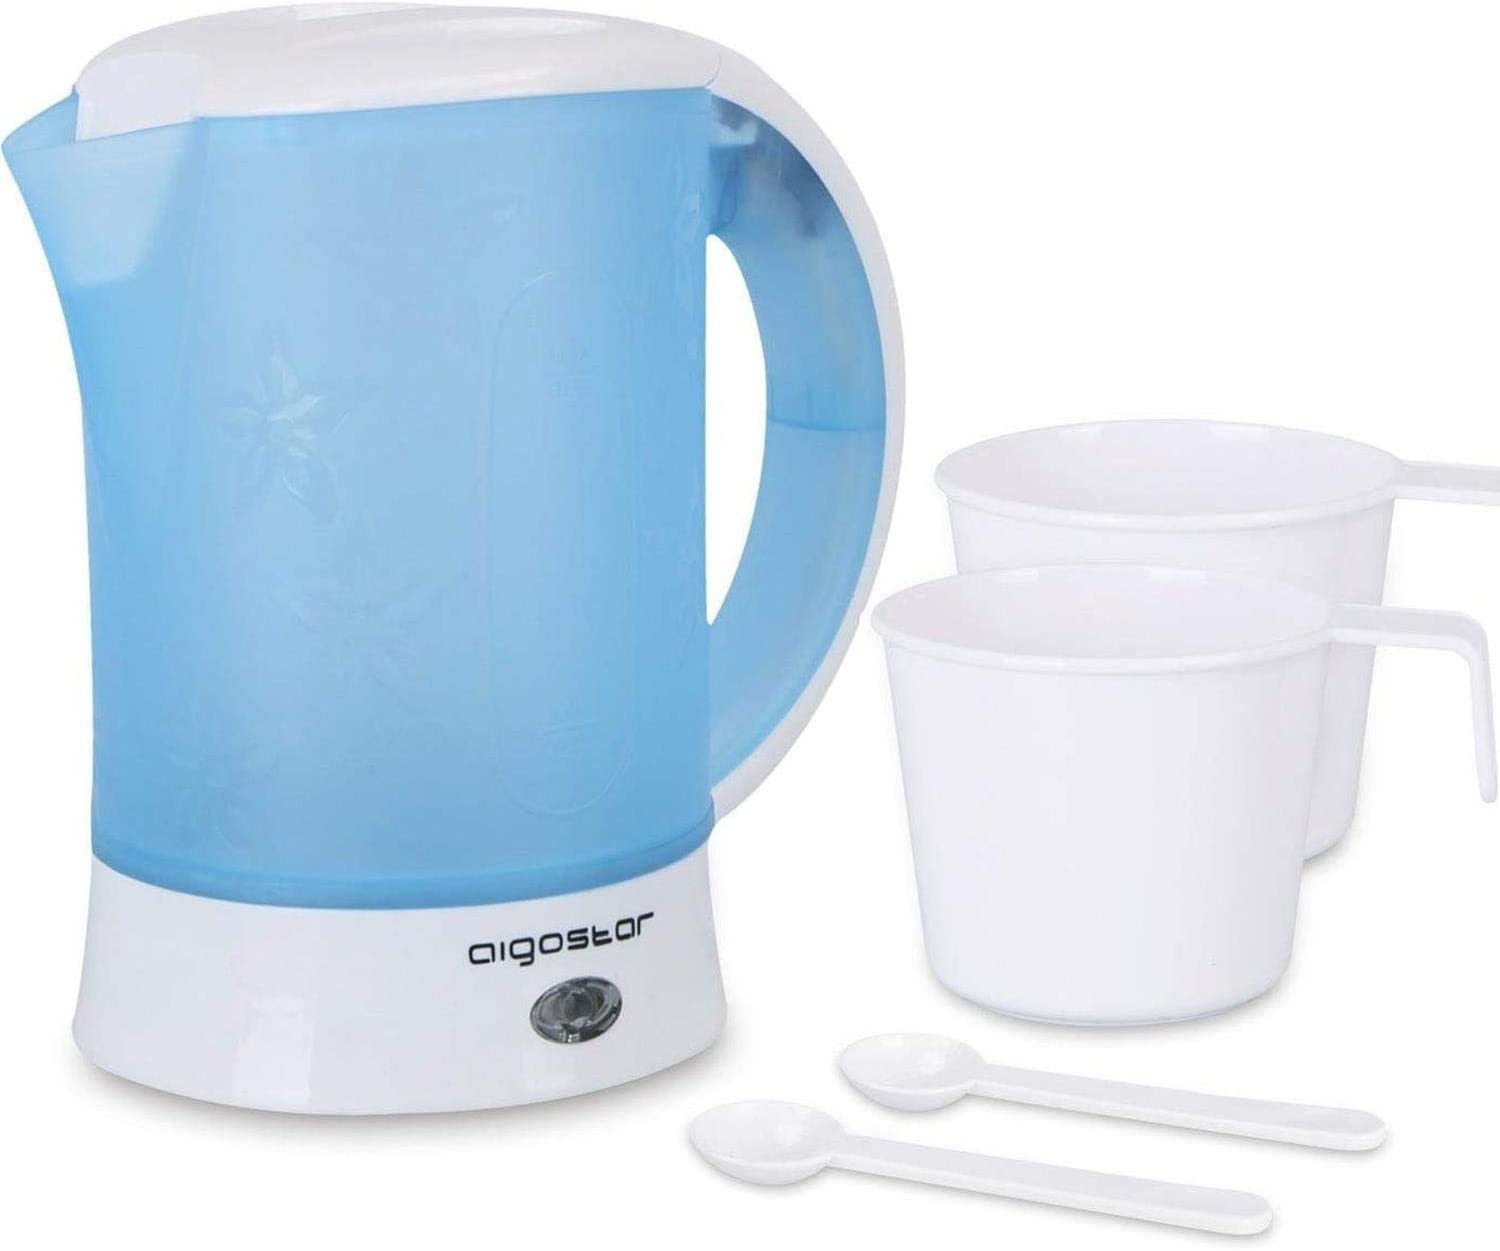 Amazon.de: Aigostar Walking Drip - Wasserkocher klein 0 -